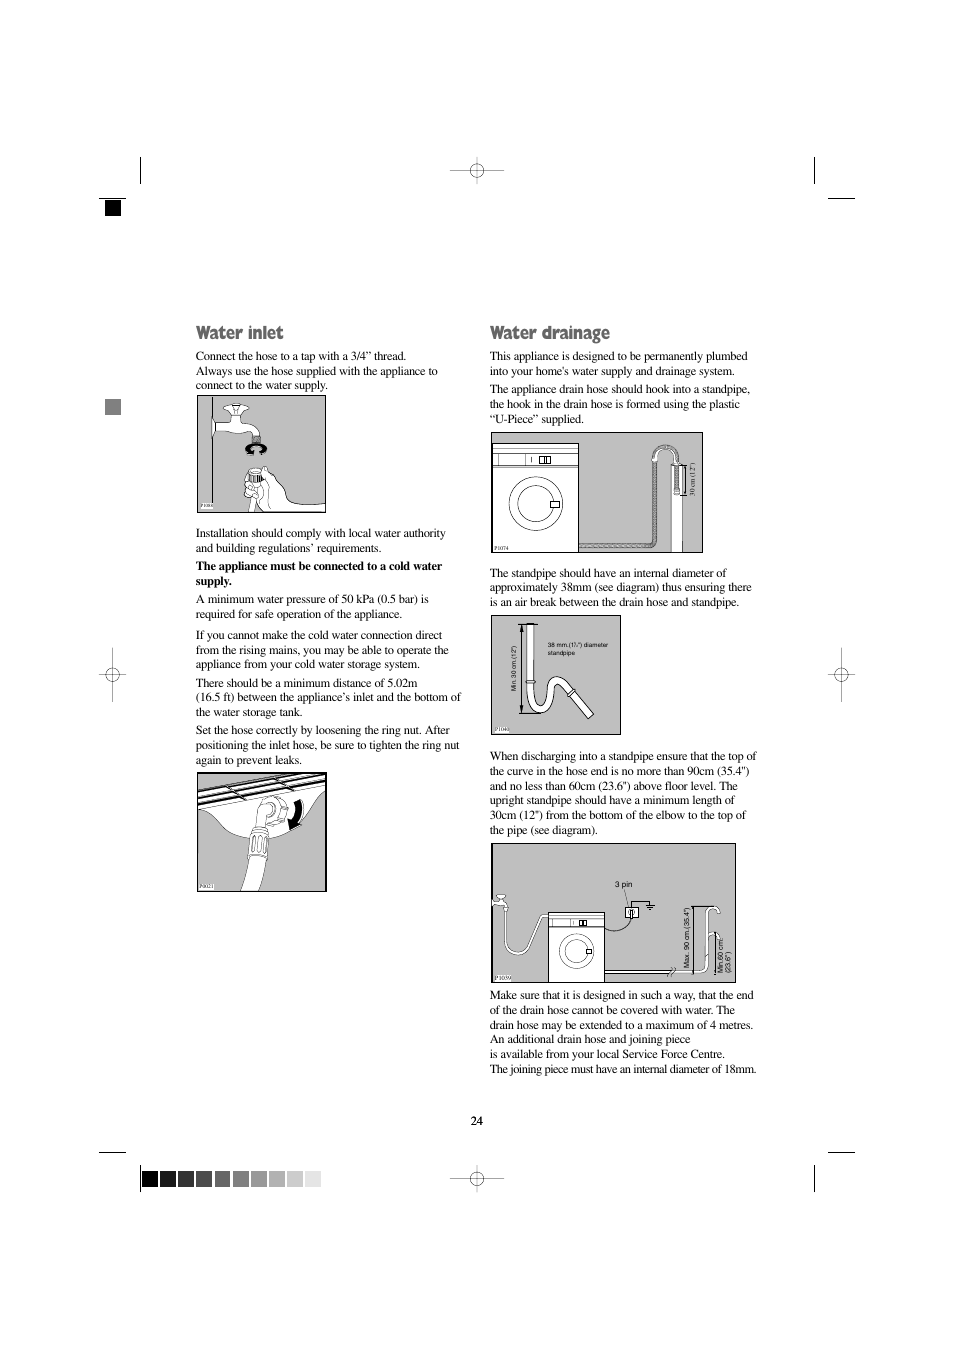 water inlet water drainage electrolux fjdr 1466 s user manual rh manualsdir com Instruction Manual Book User Manual Template